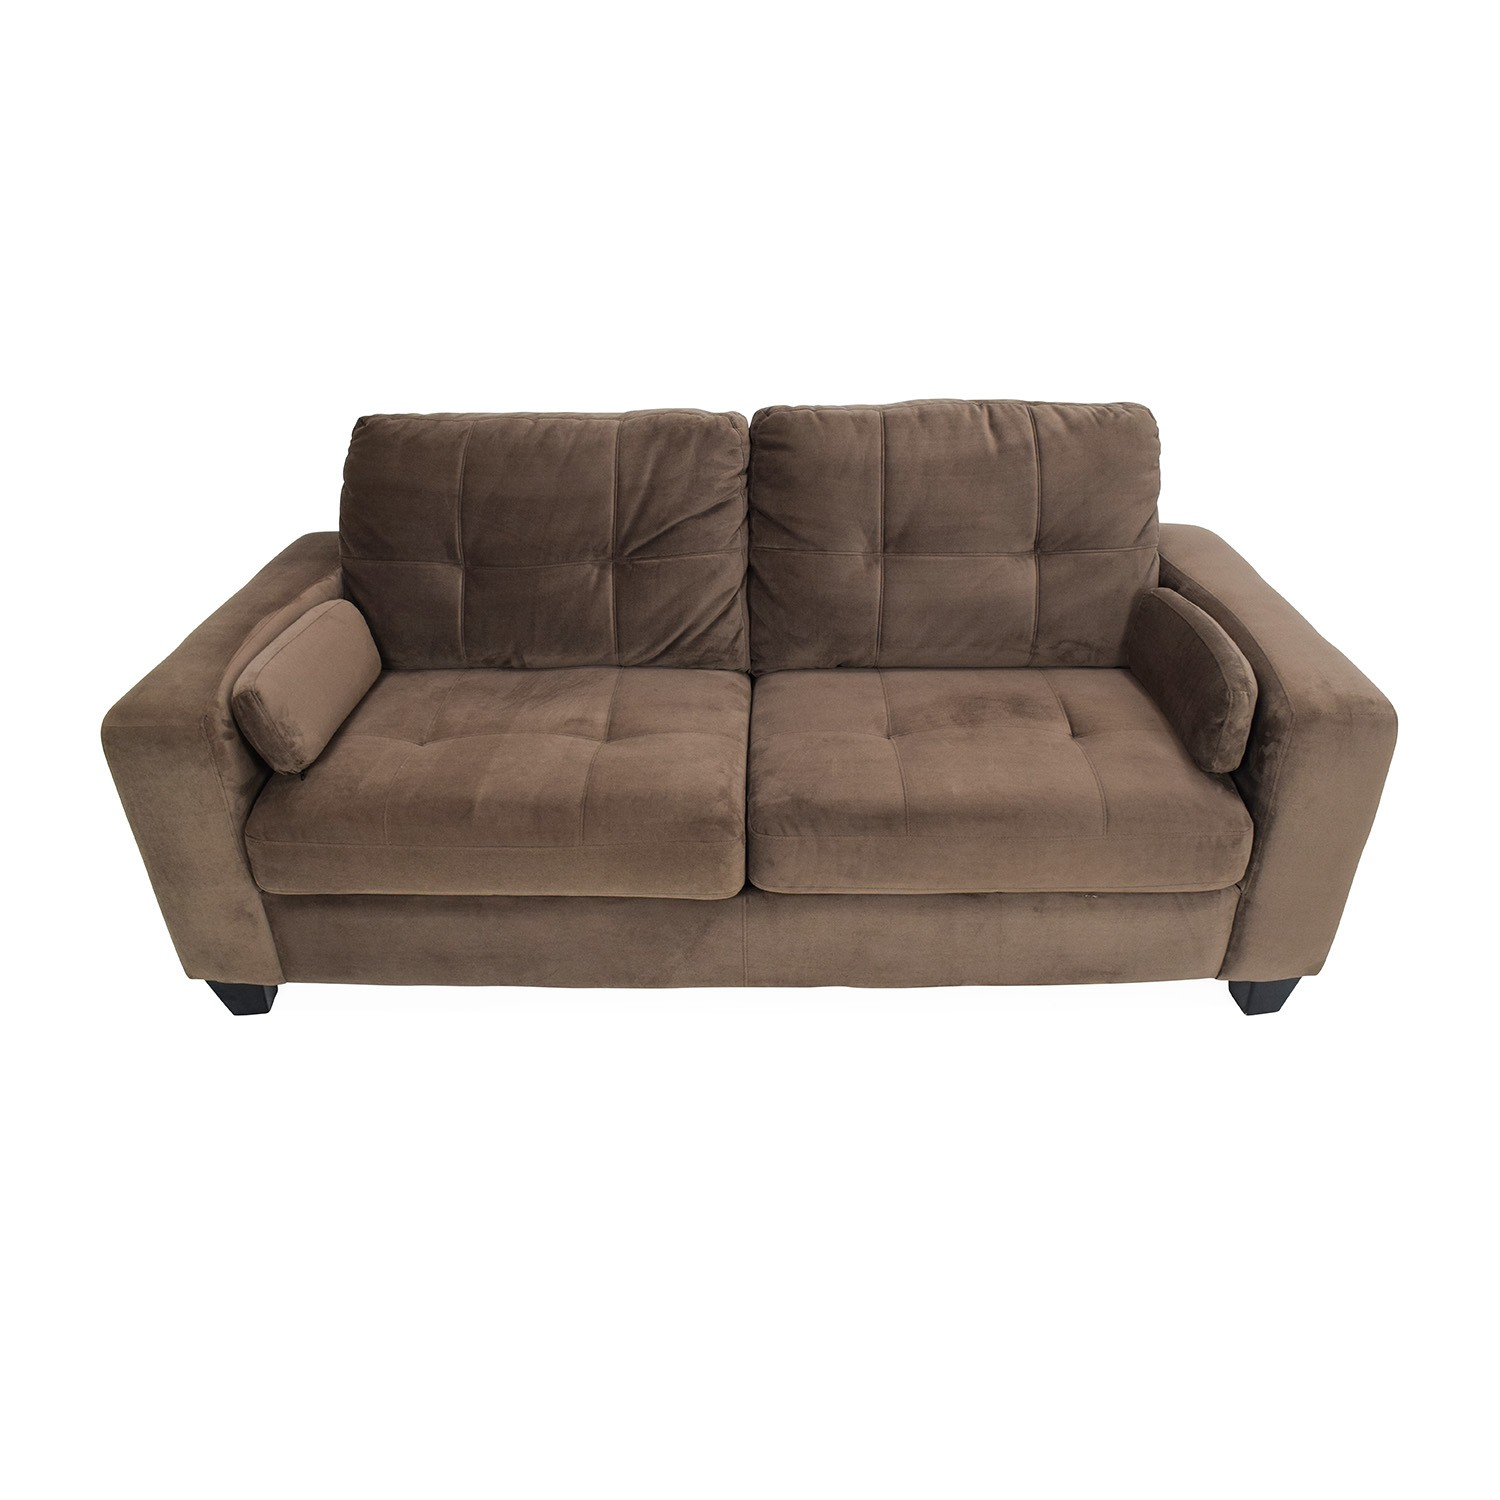 New Jennifer Convertibles Sofa Bed Picture